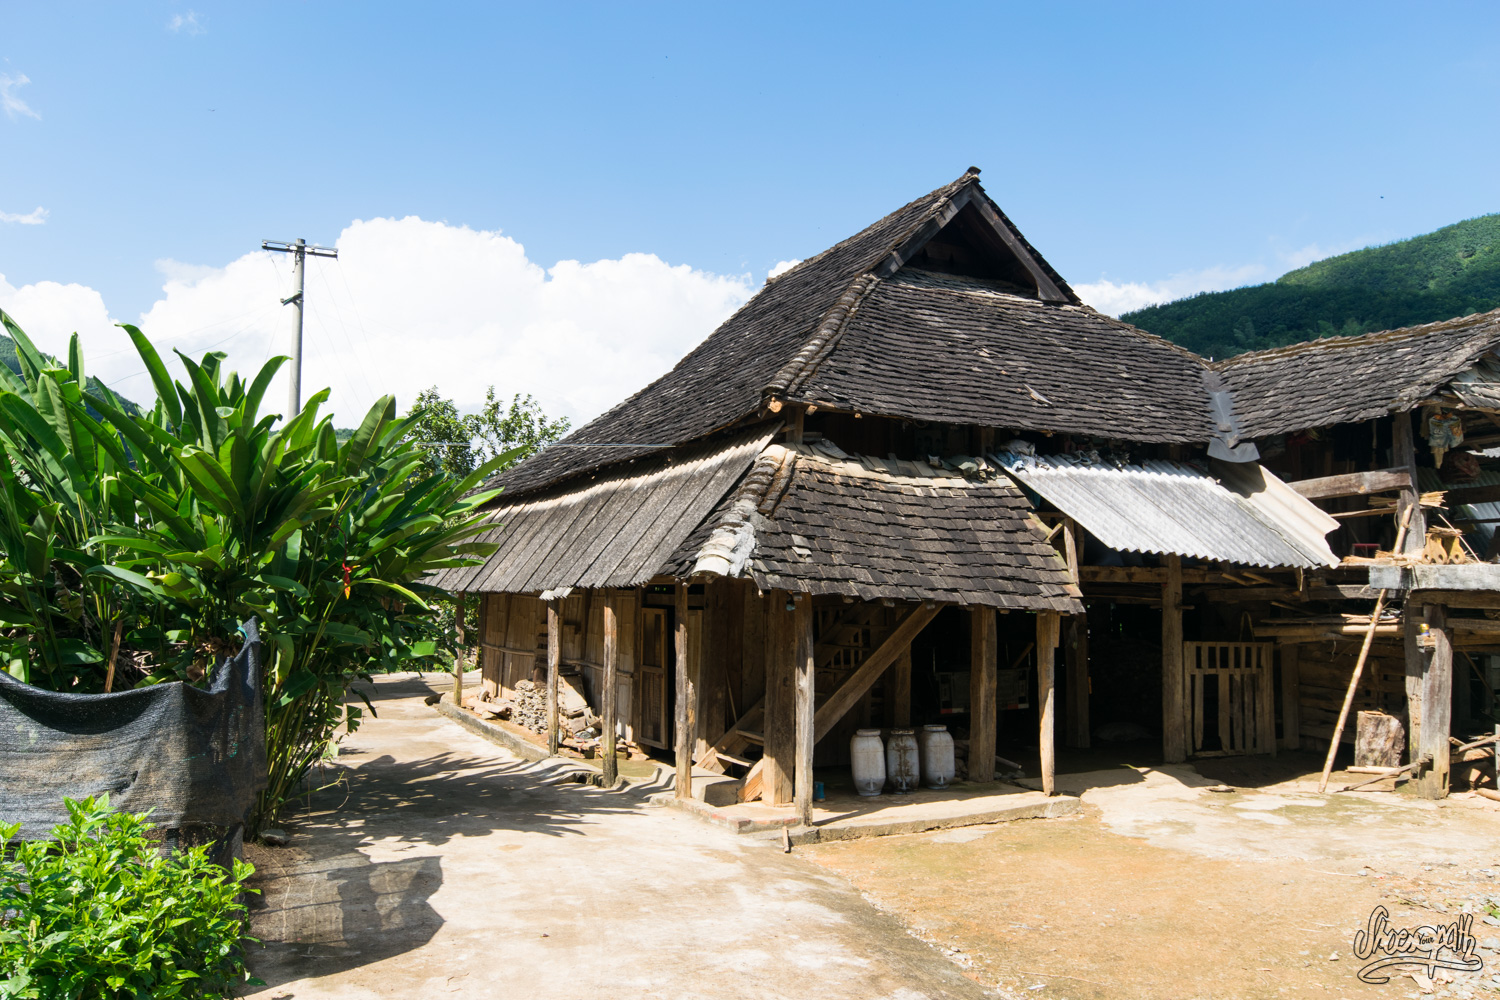 Little traditional village of Xishuangbanna